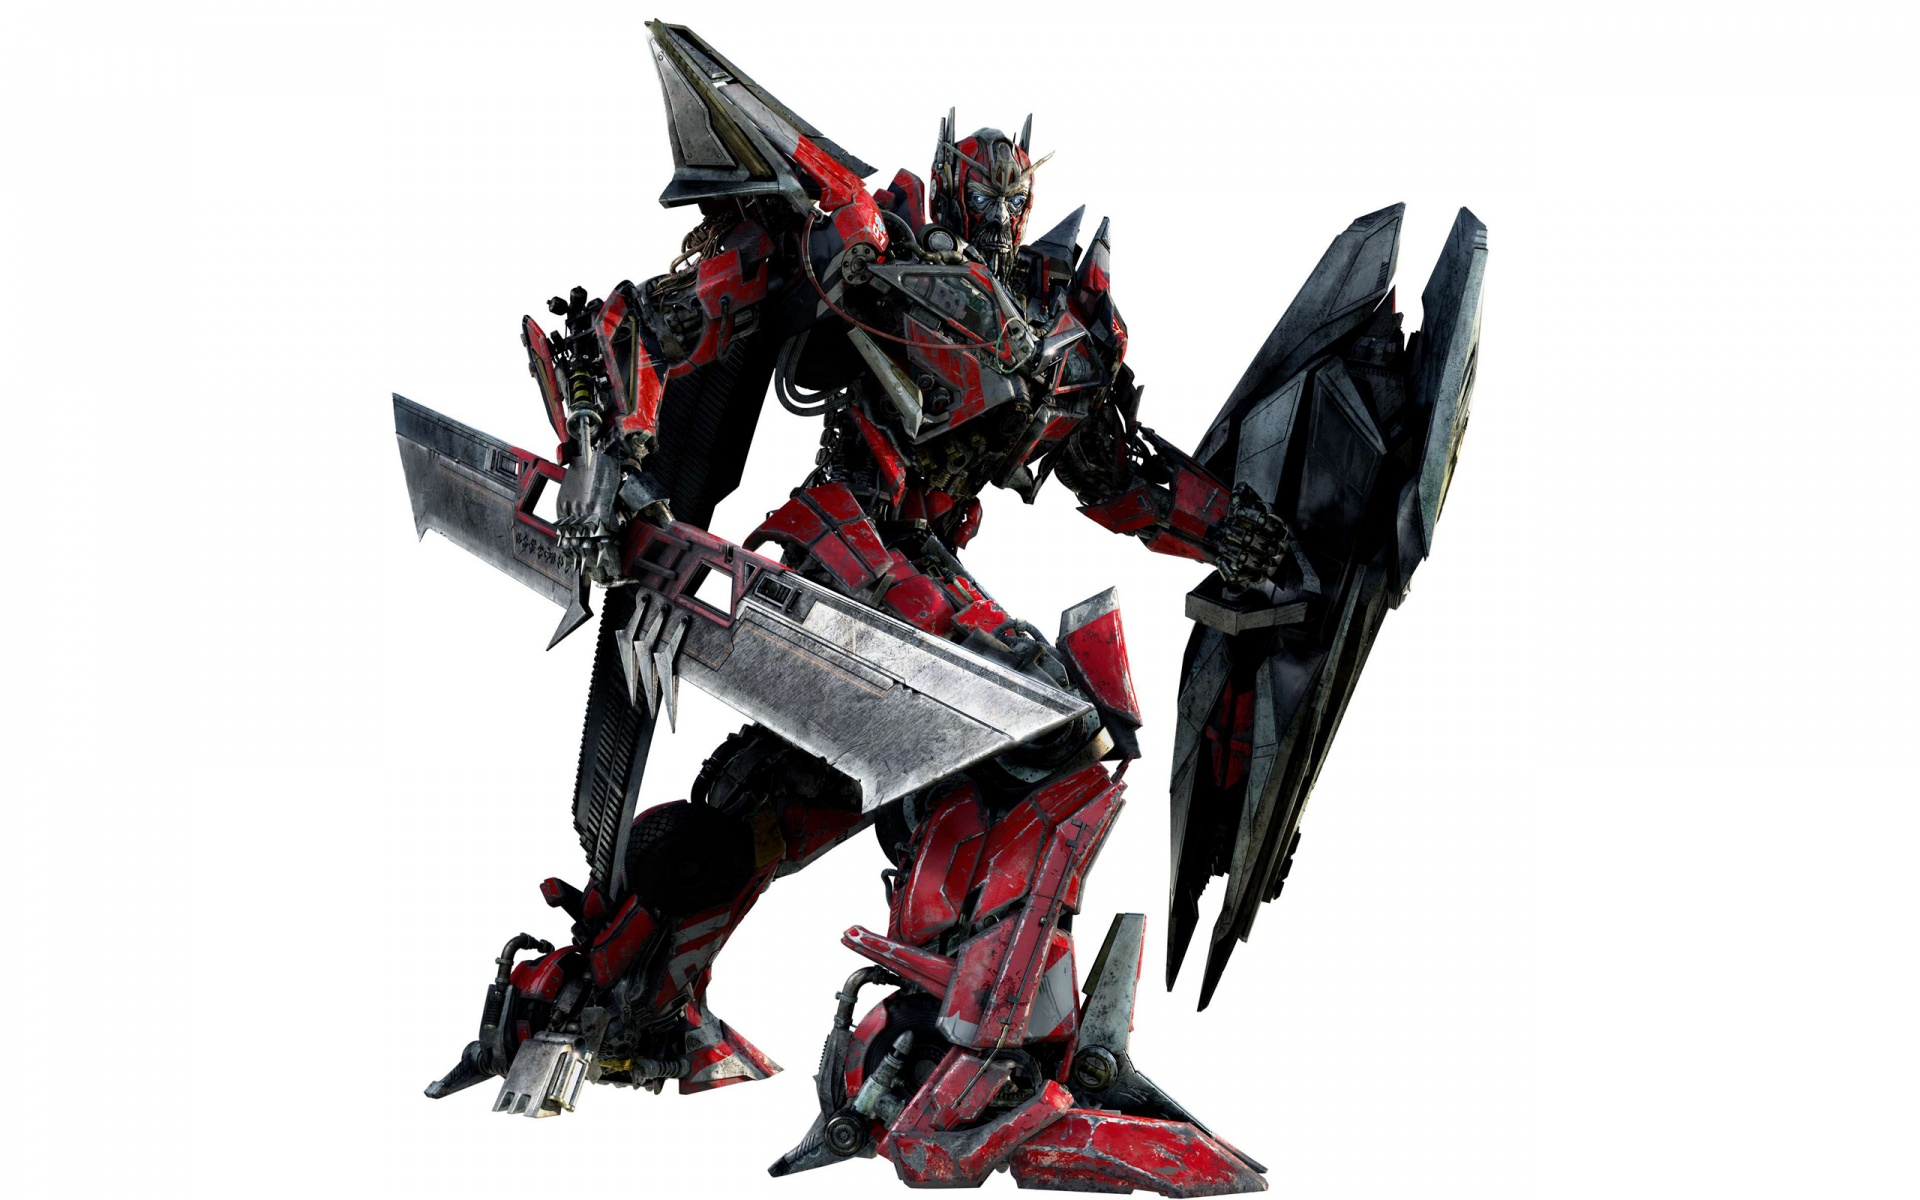 is sentinel prime good or bad in transformers 3 dark of the moon